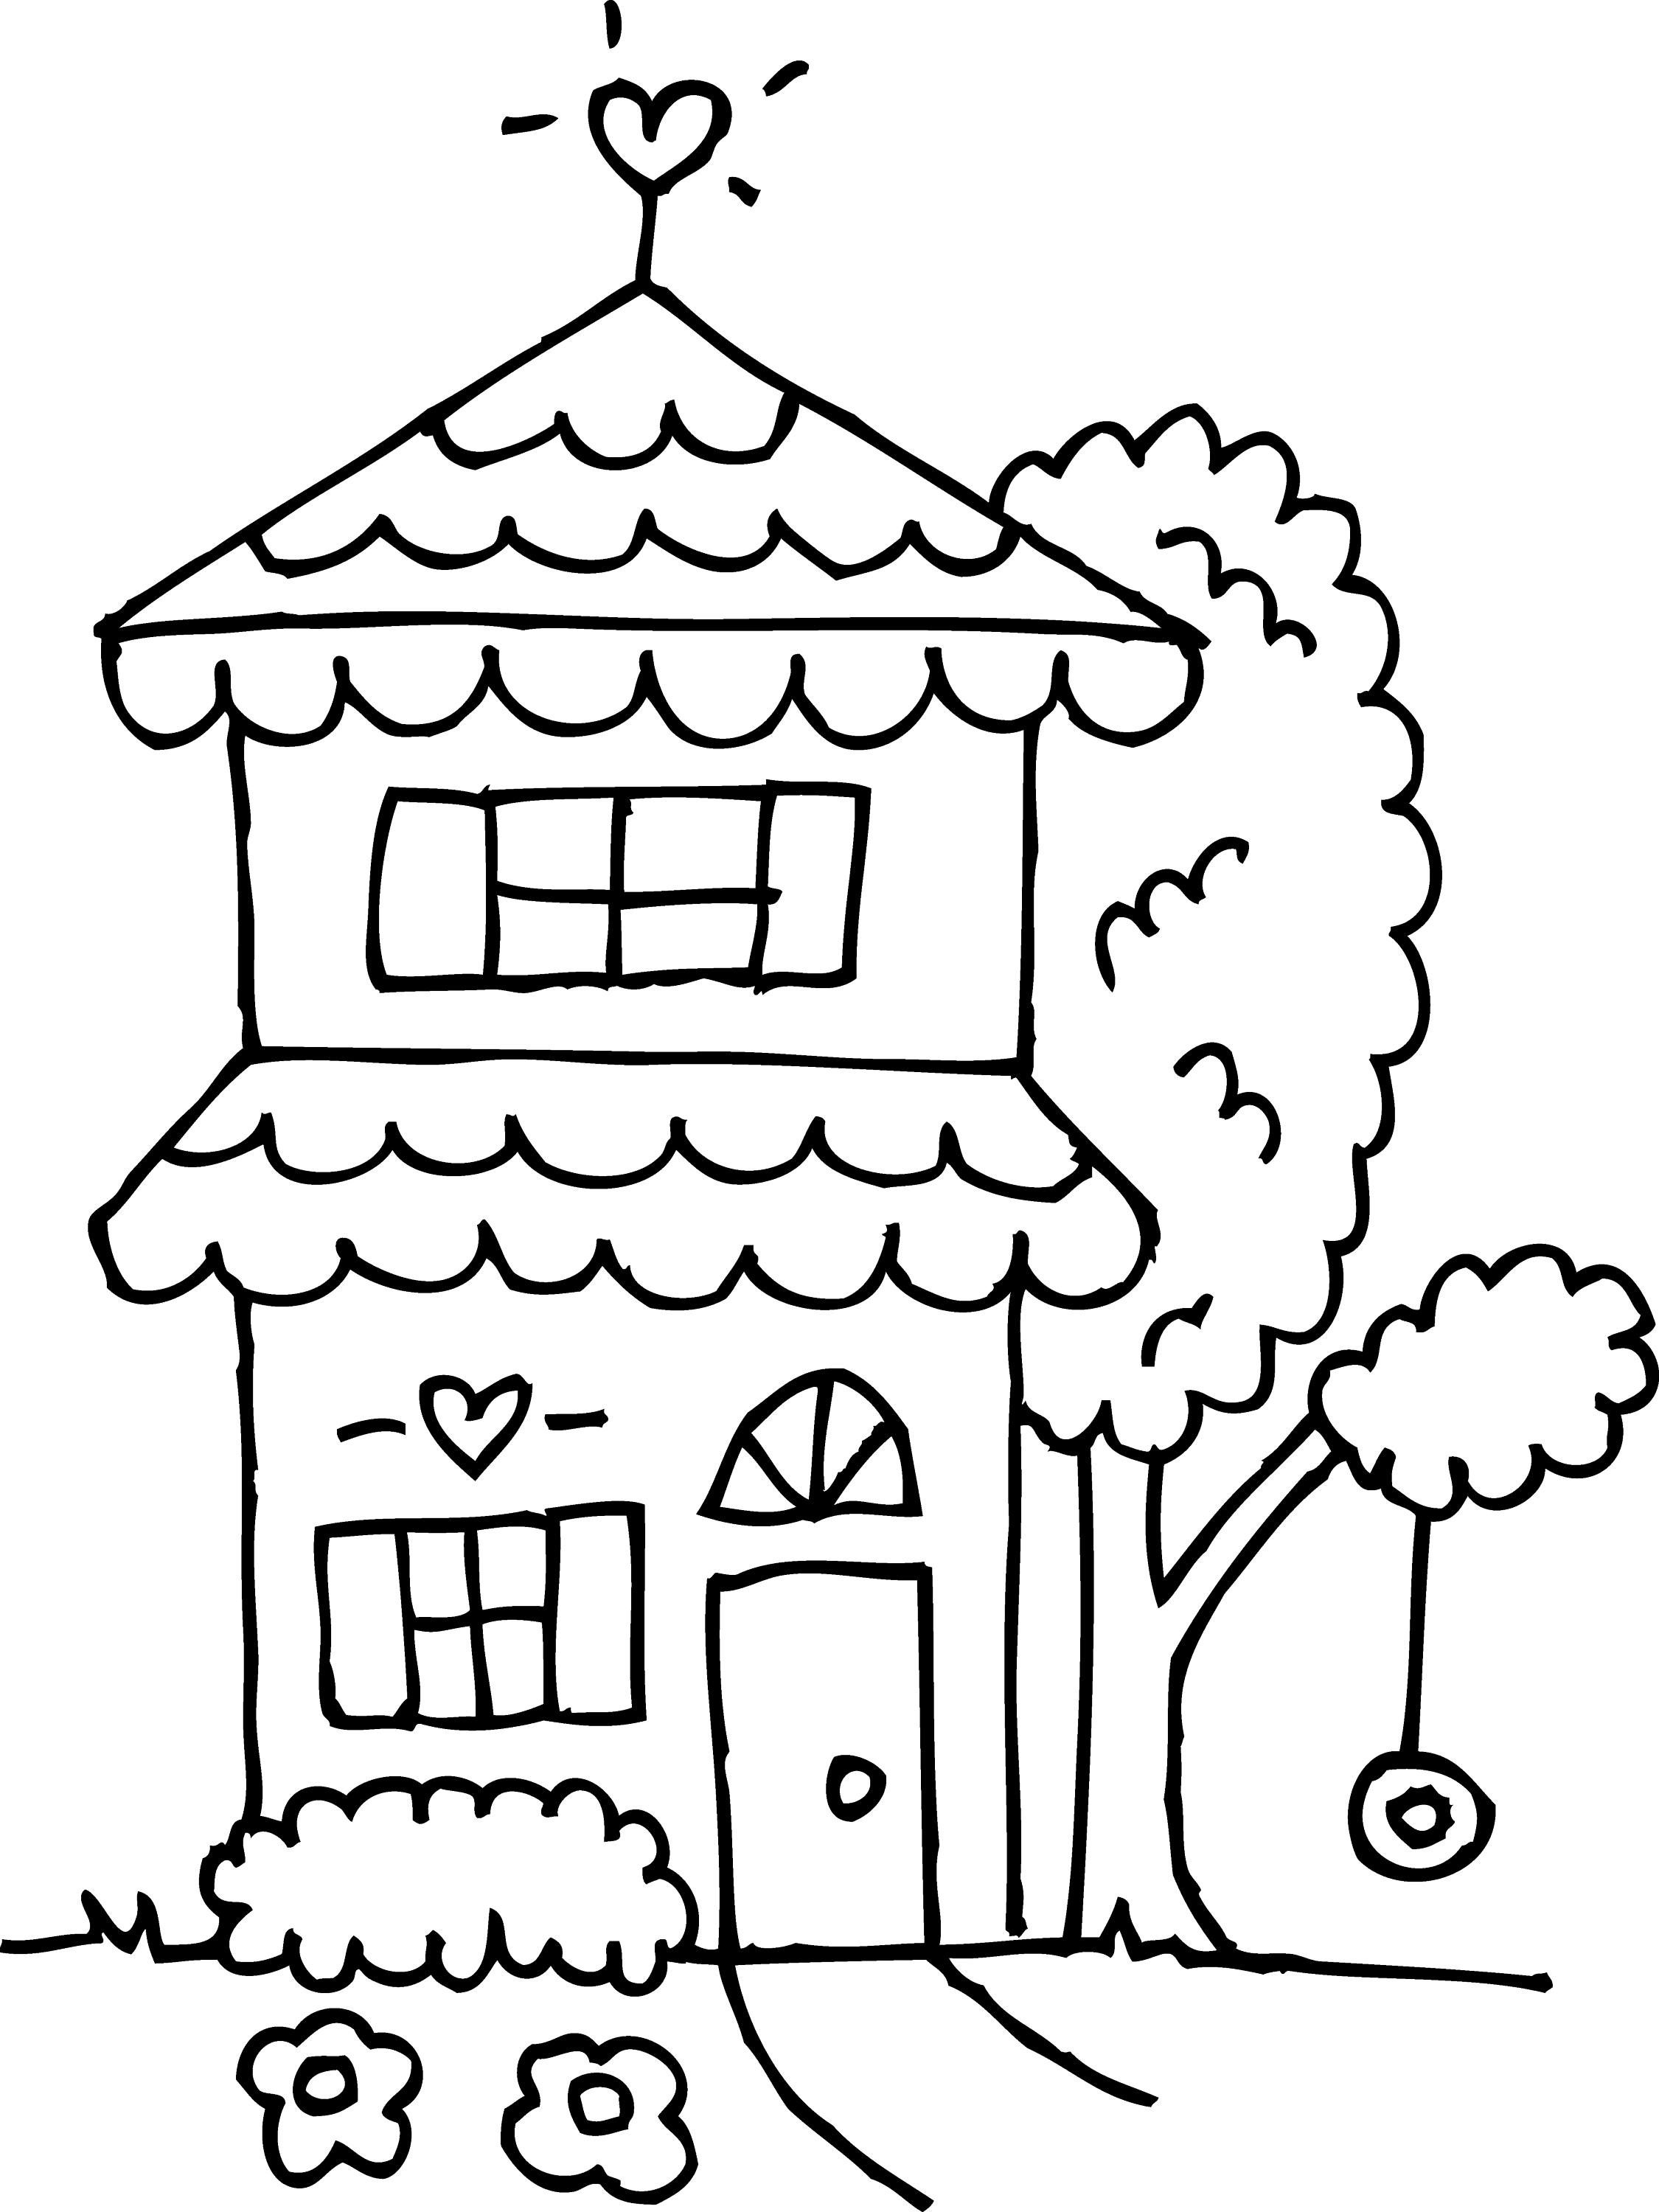 coloring worksheets house architecture village roofs architecture adult coloring pages house worksheets coloring